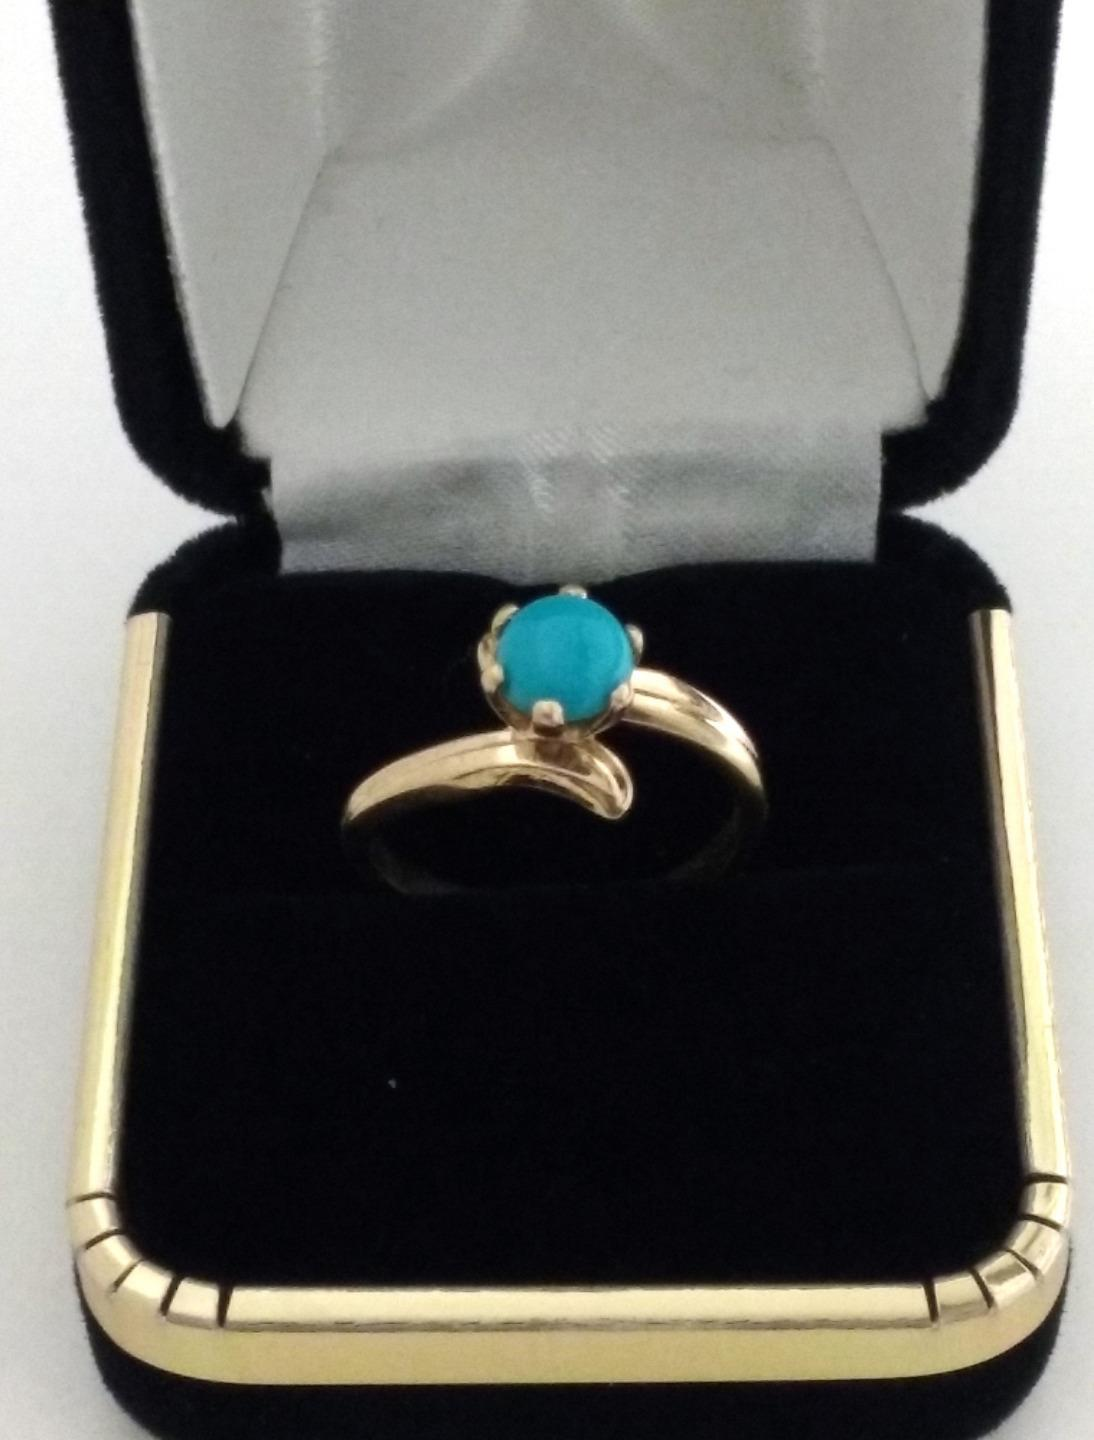 Turquoise Ring in Real Solid 14k Yellow gold Nice Jewelry Gift for Women